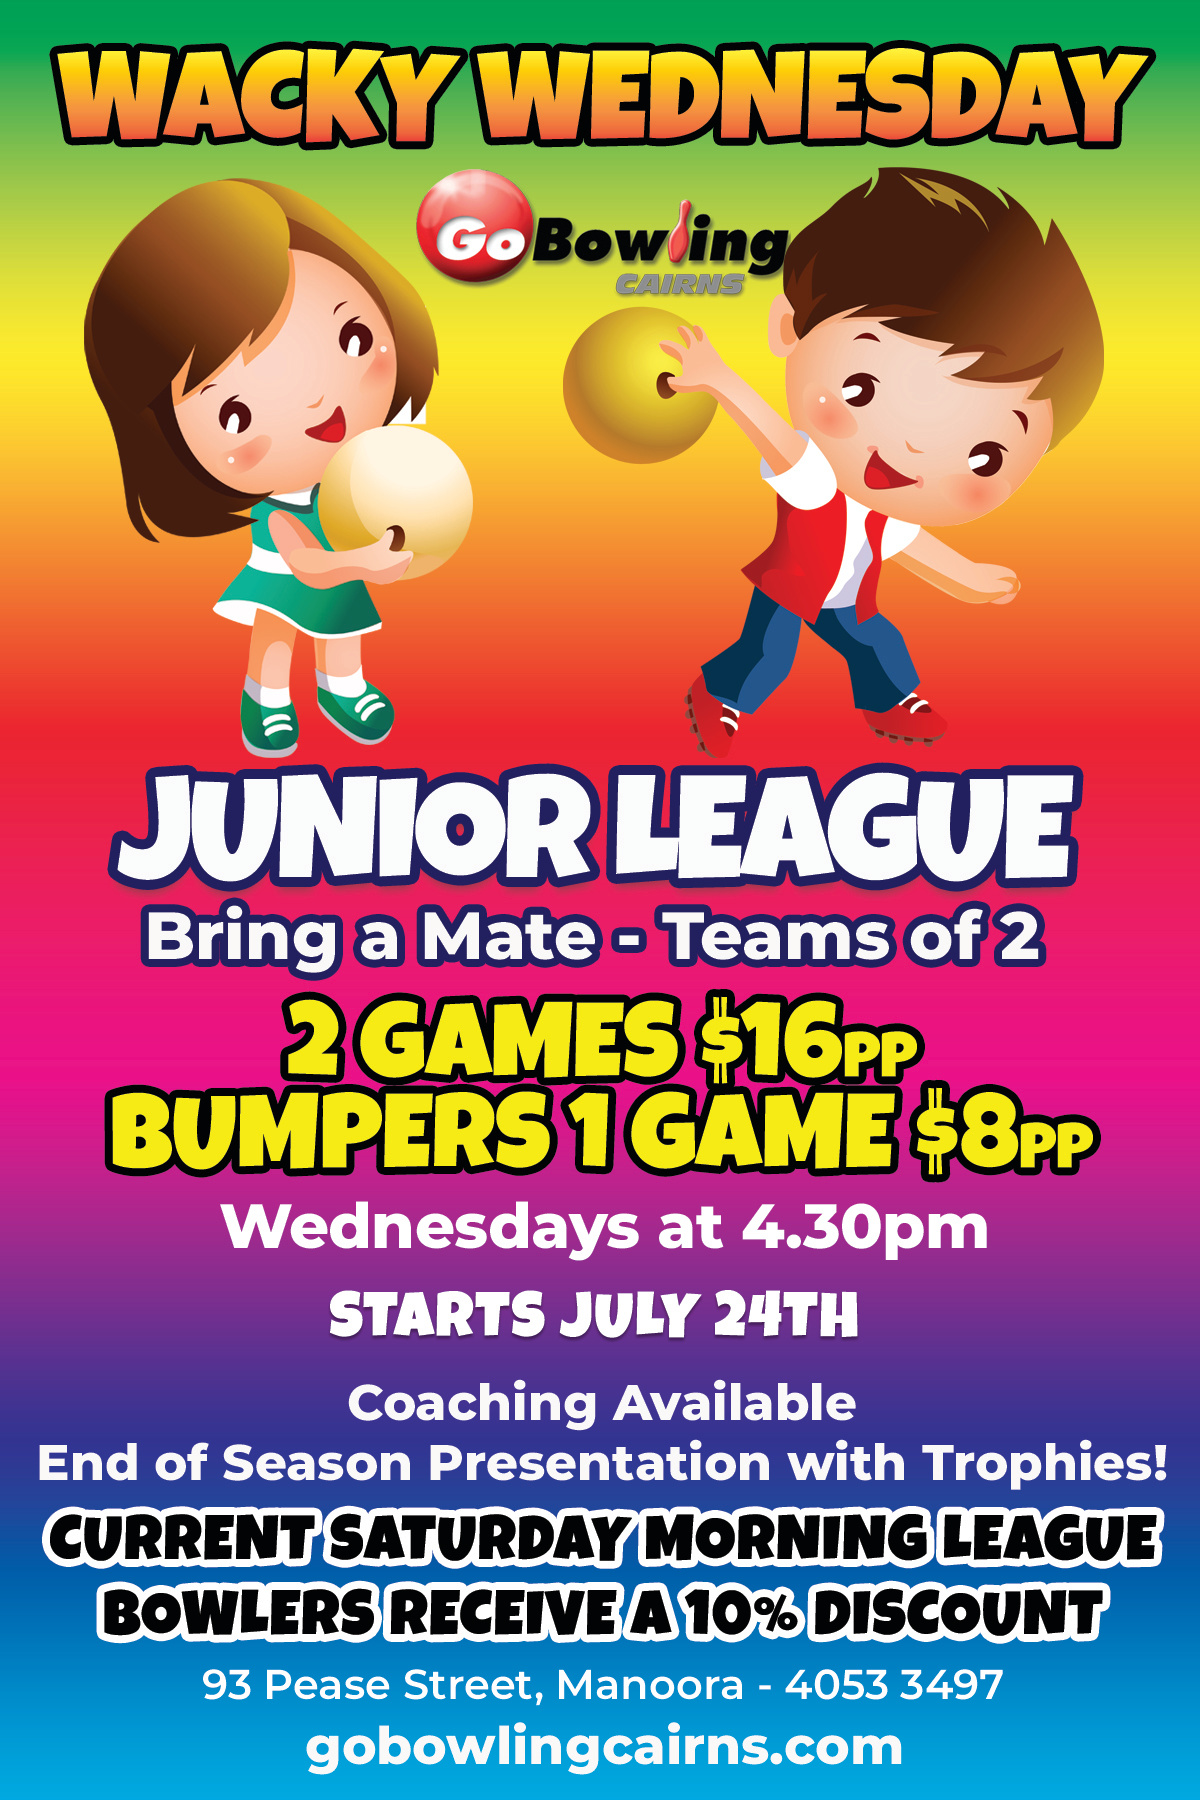 Wednesday Kids League